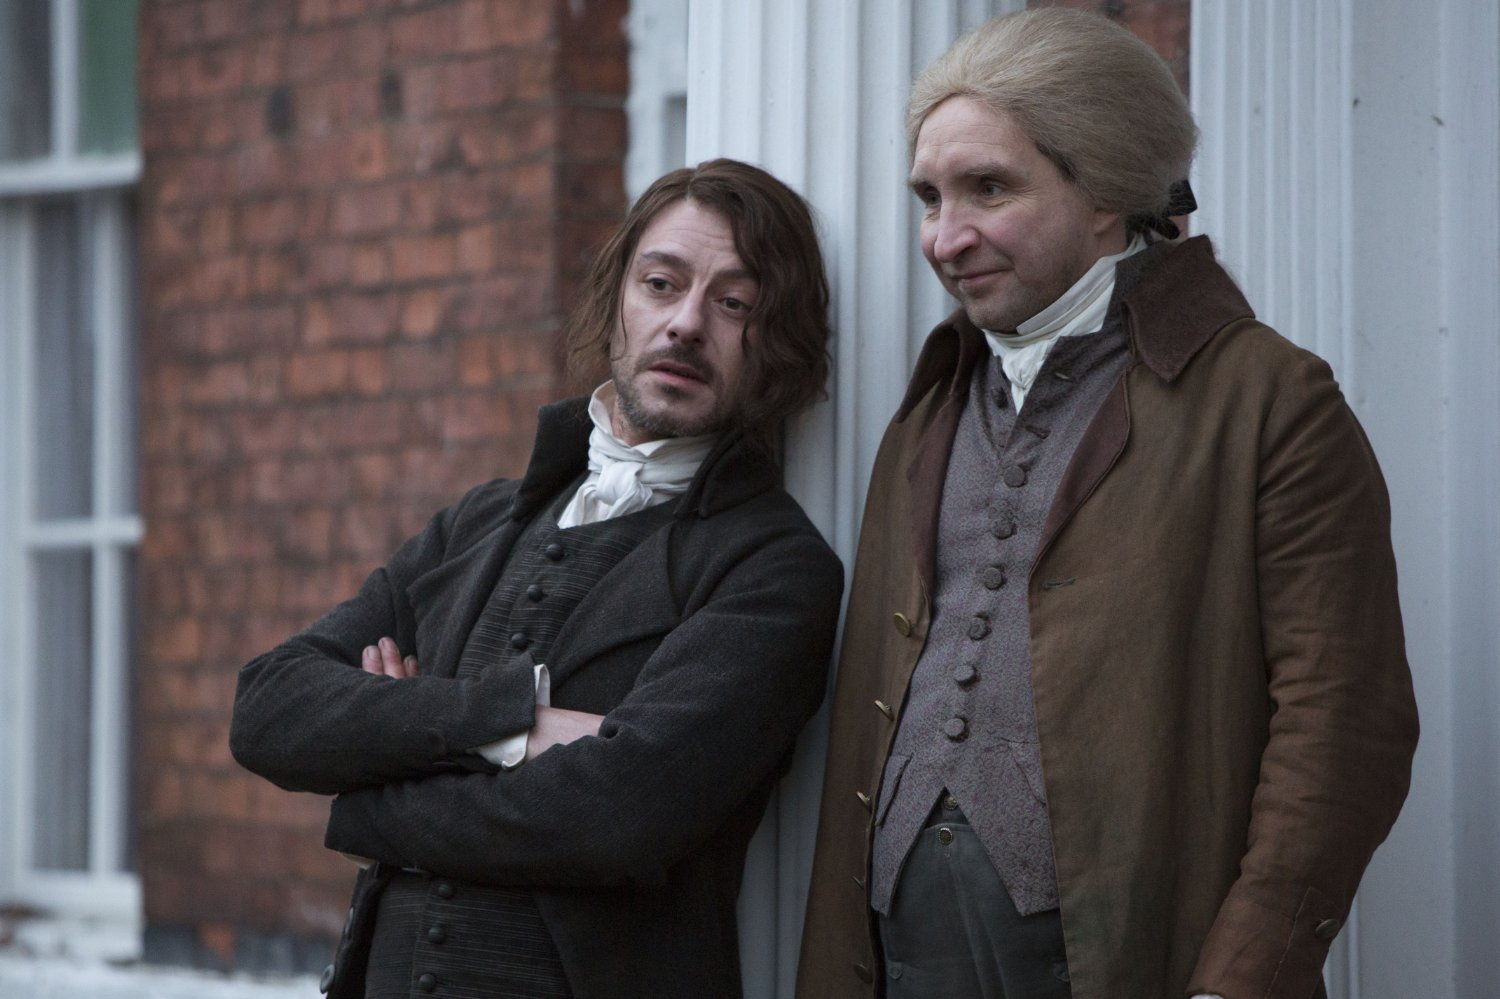 Johnathan Strange & Mr. Norrell Season 2 2